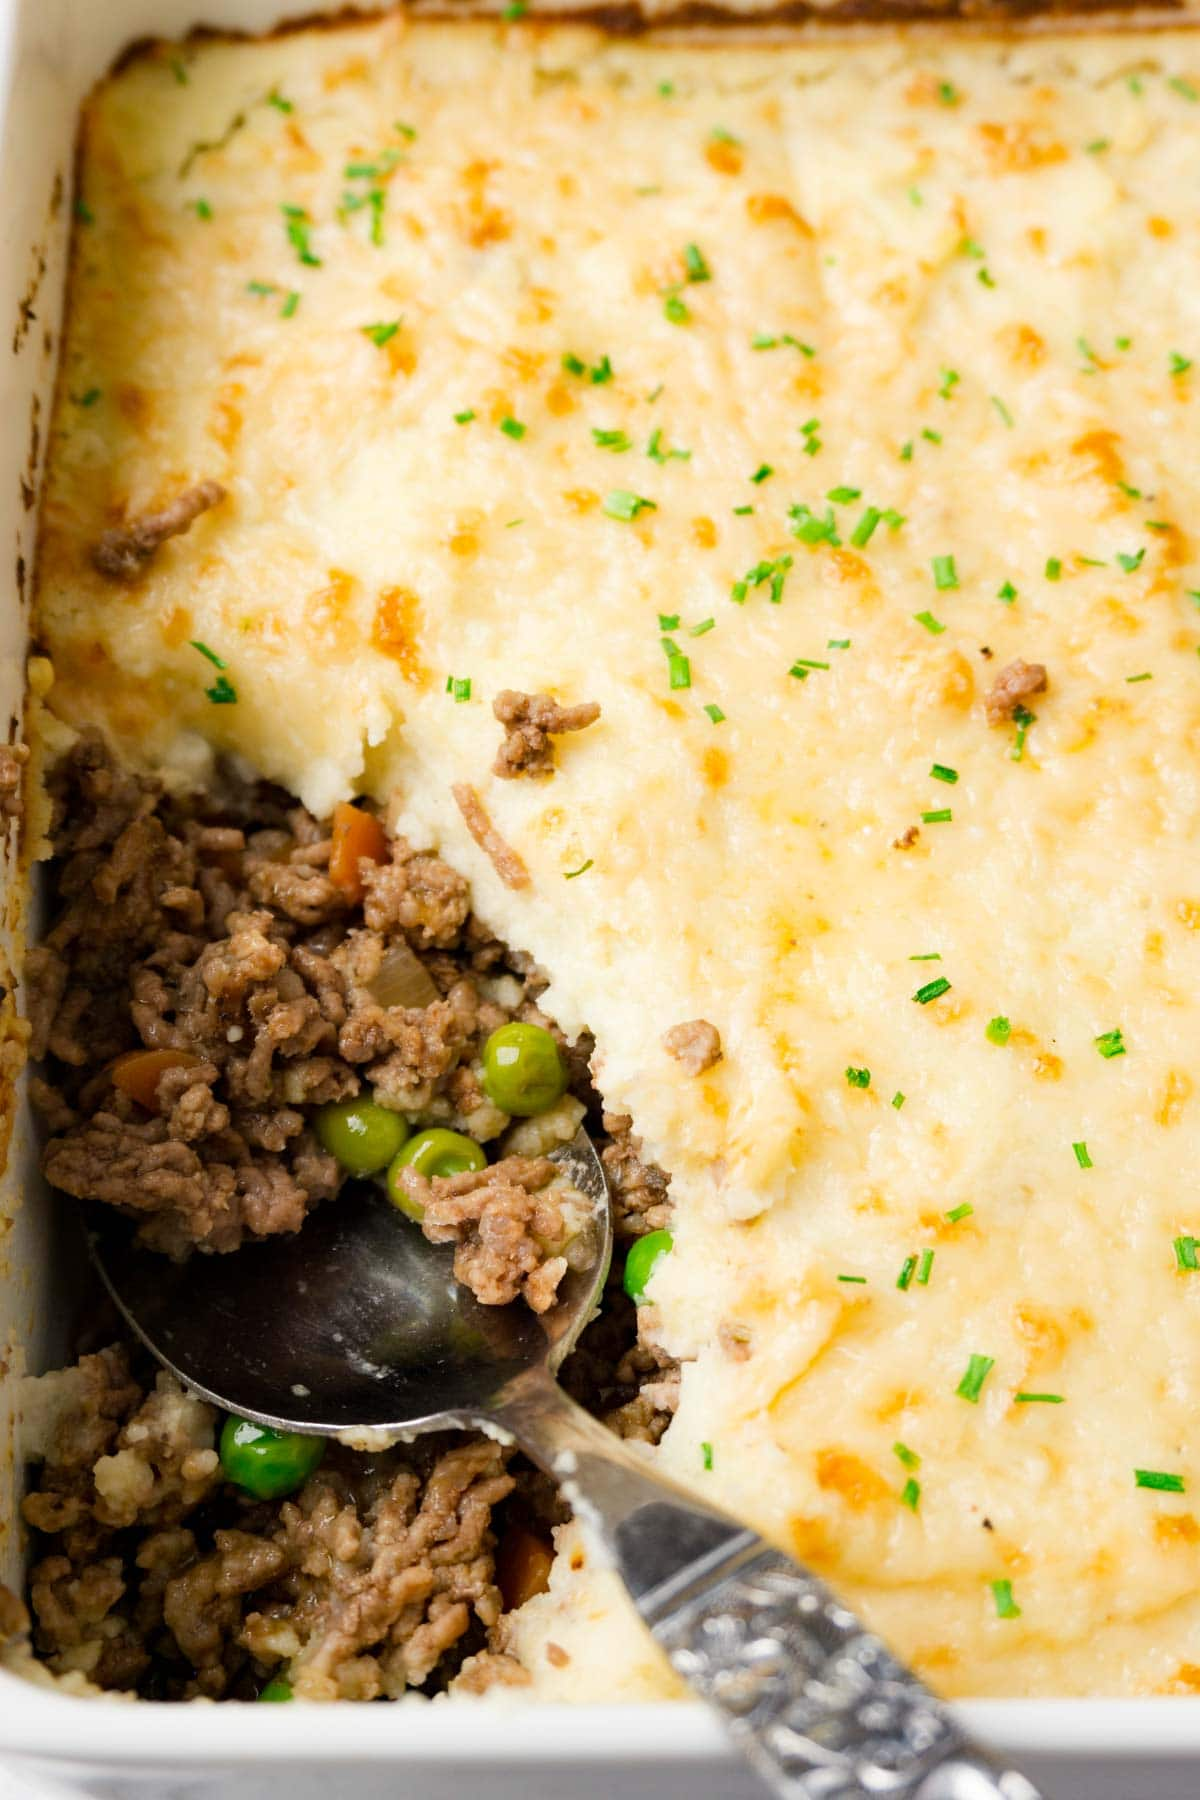 Casserole dish with freshly baked shepherd's pie garnished with chives, one piece takes with a spoon.